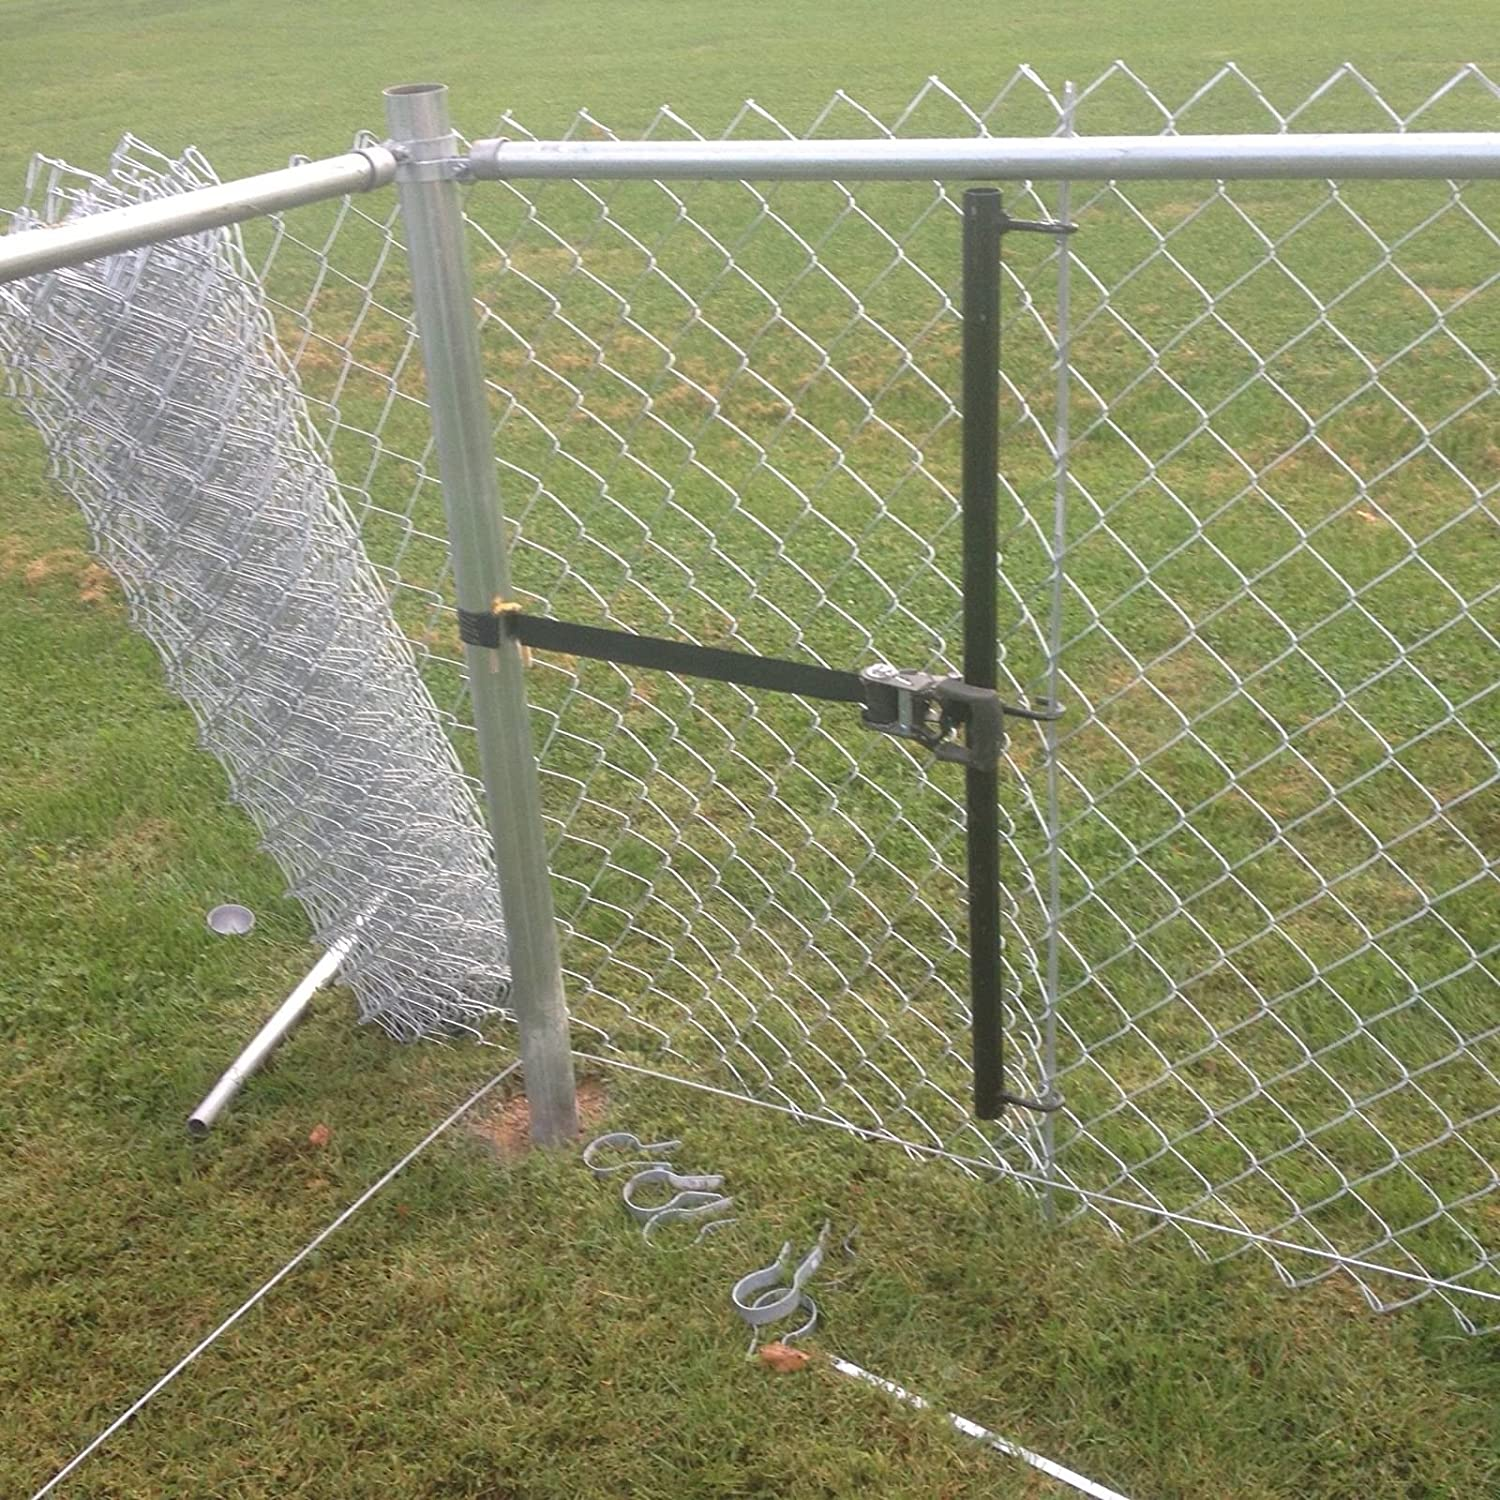 Amazon.com : Ezzypull Chain Link Fence Stretcher Pulling Made in USA ...